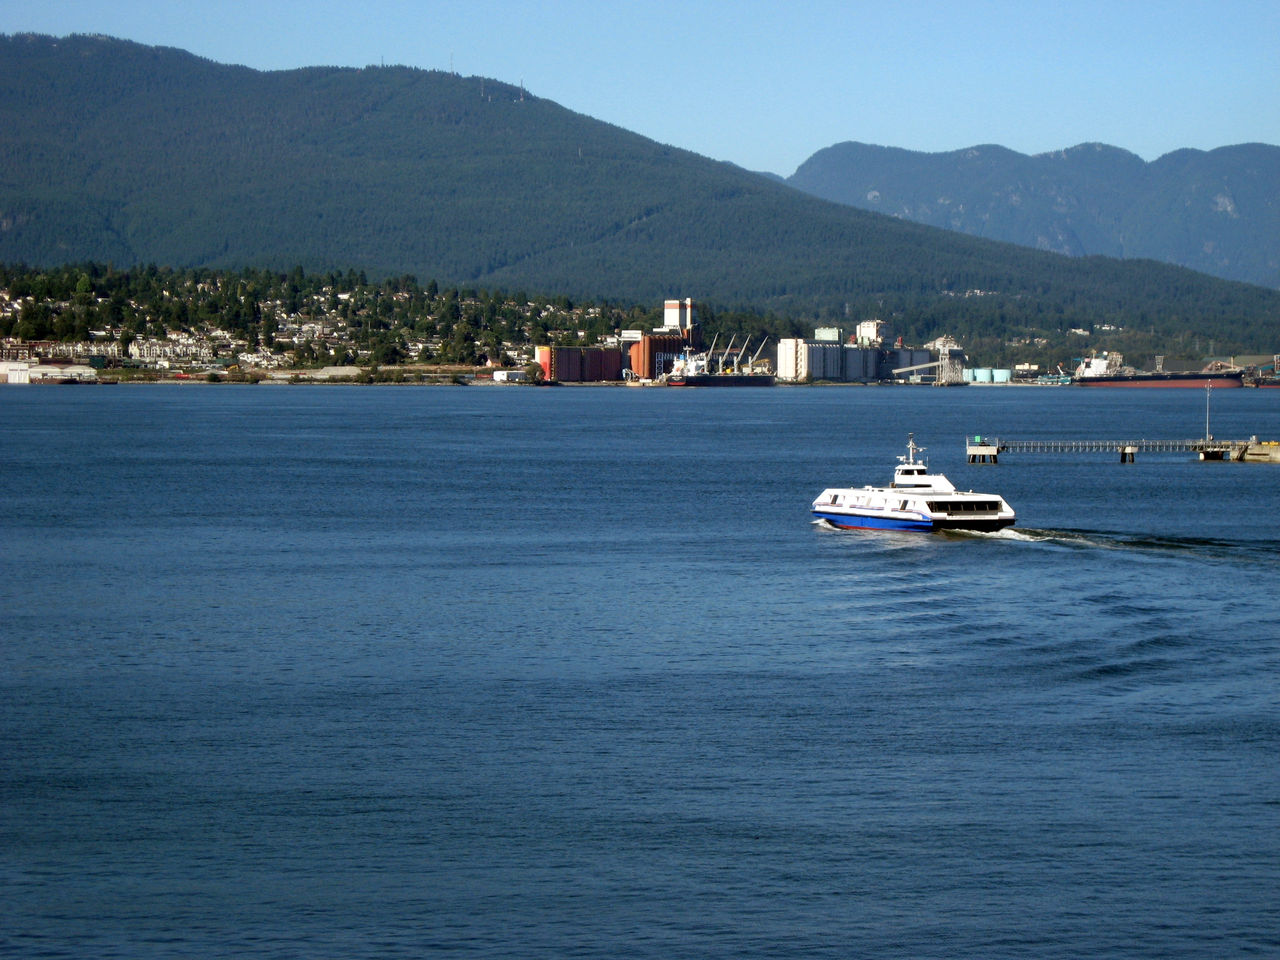 Seabus crossing Burrard Inlet to Lonsdale Quay in North Vancouver